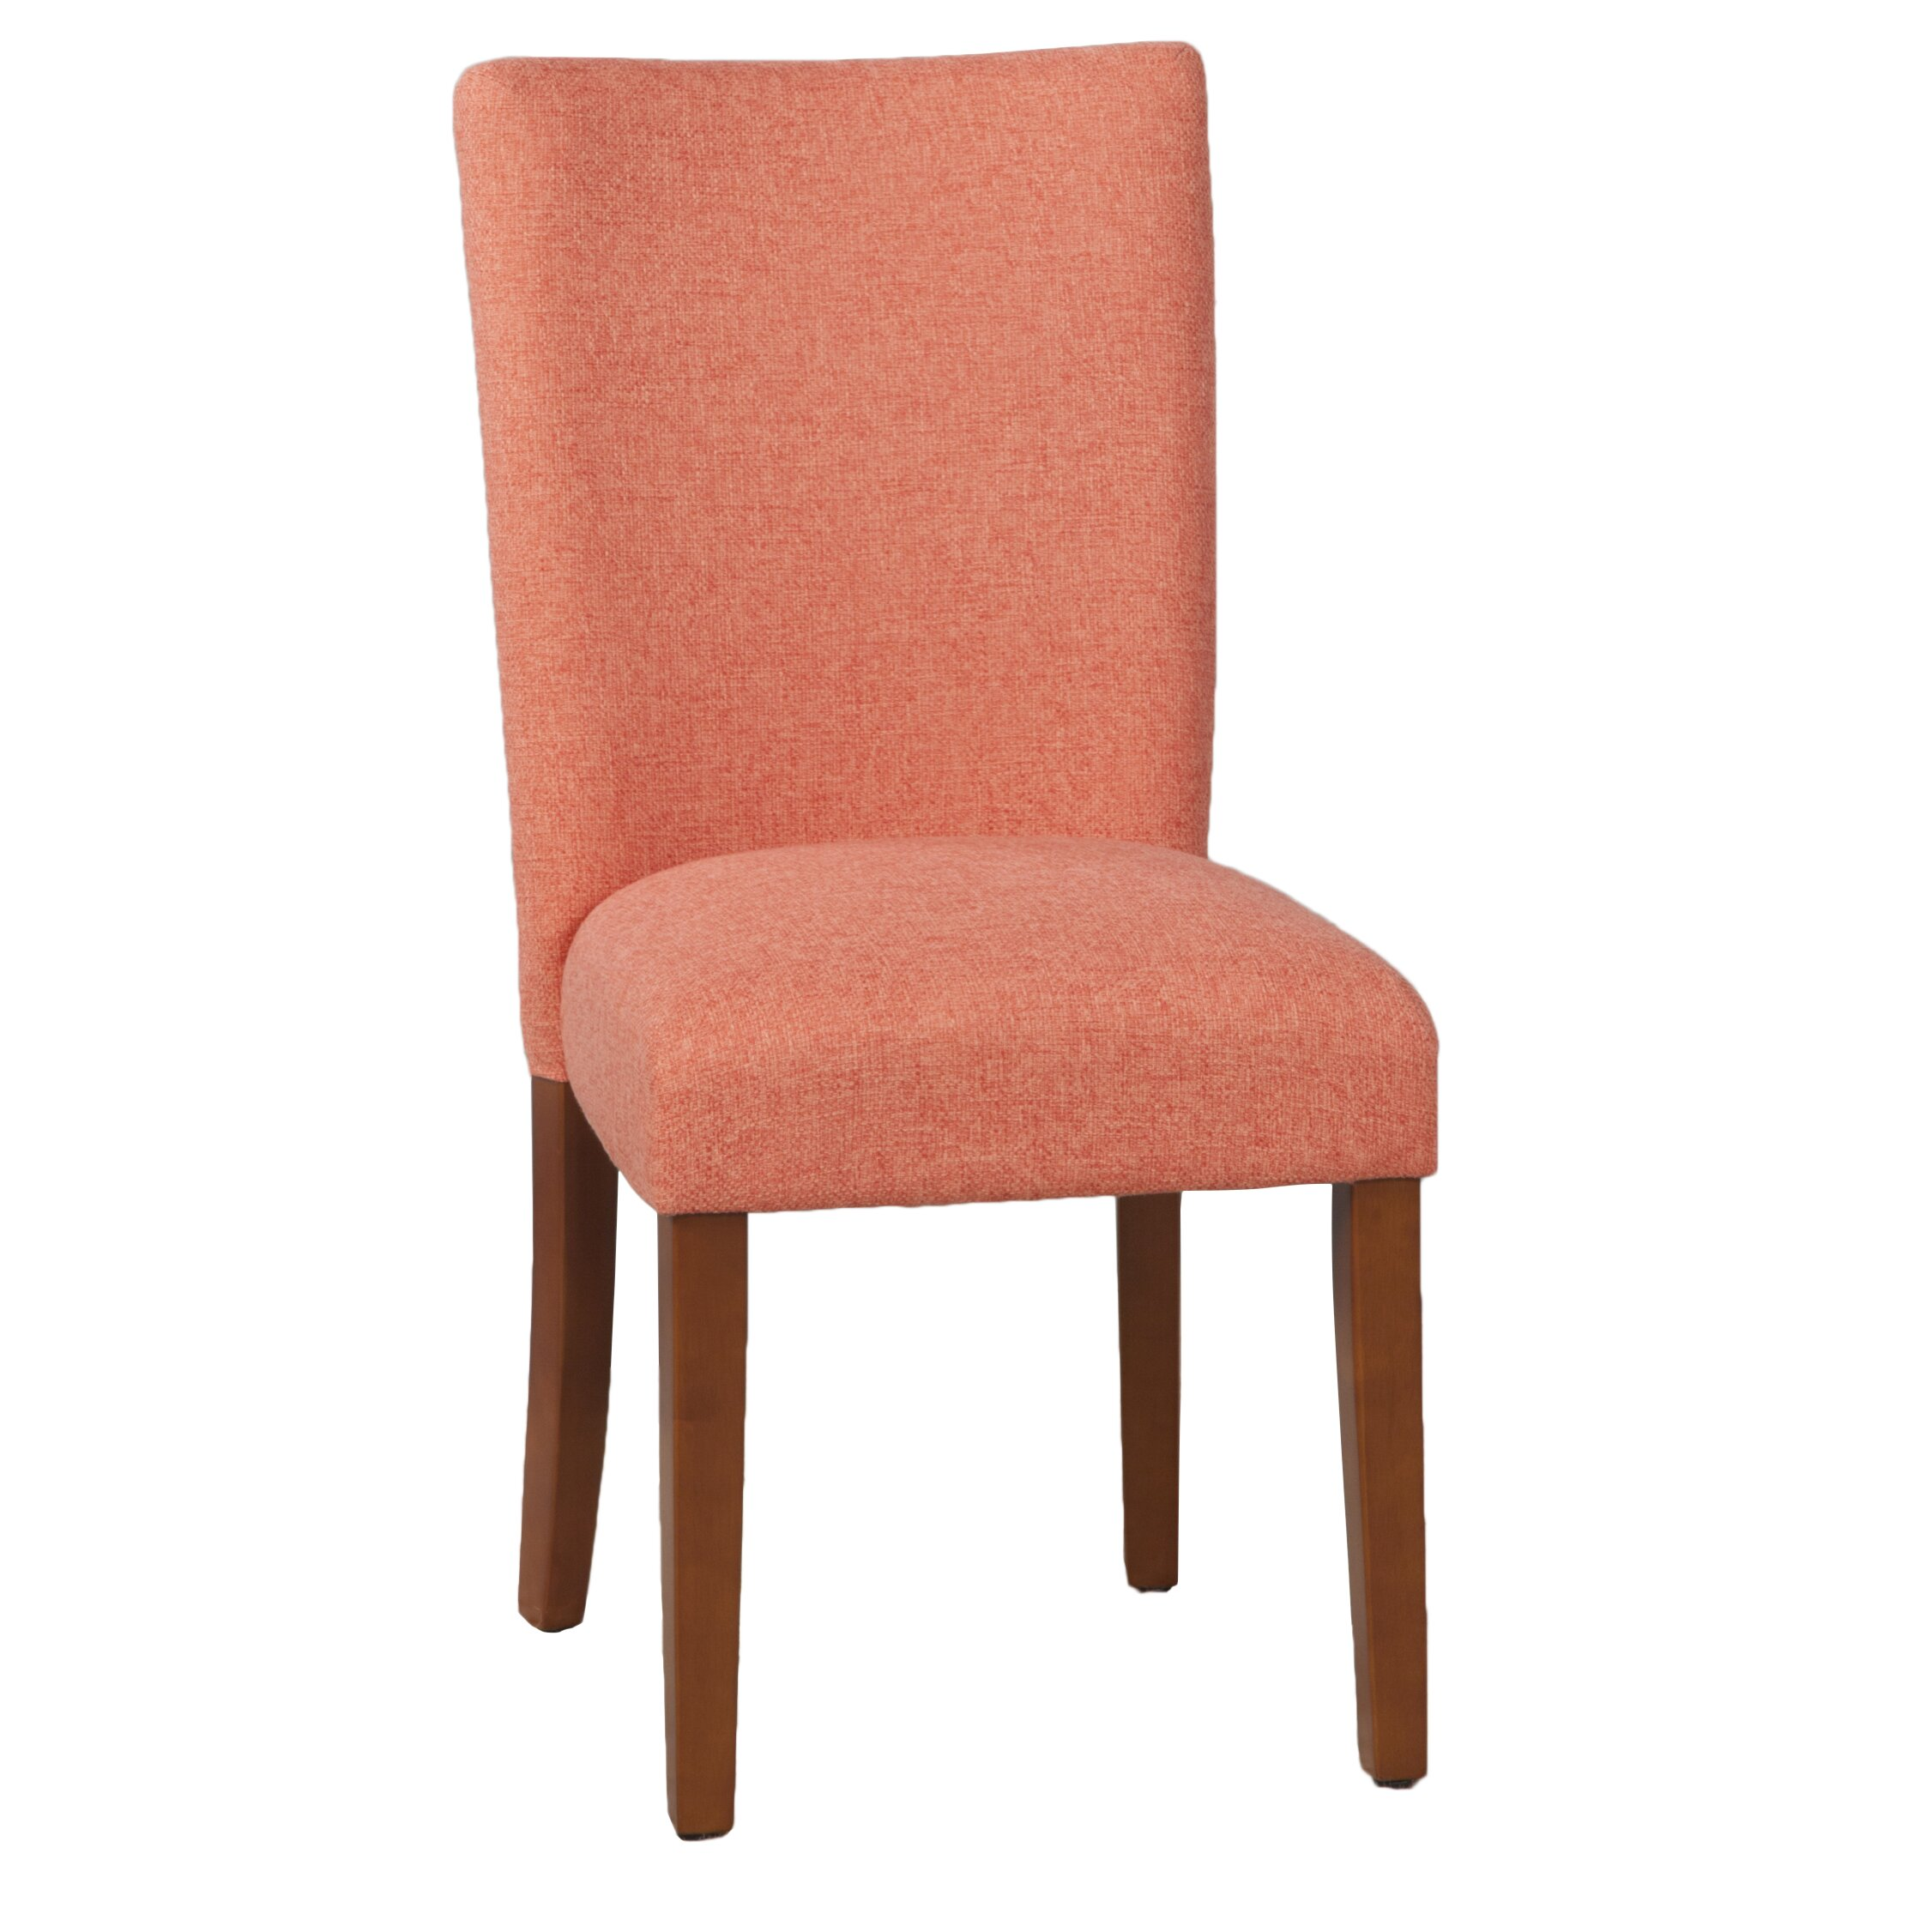 Wayfair Supply Furniture ... Dining Chairs HomePop SKU: HOEE1026